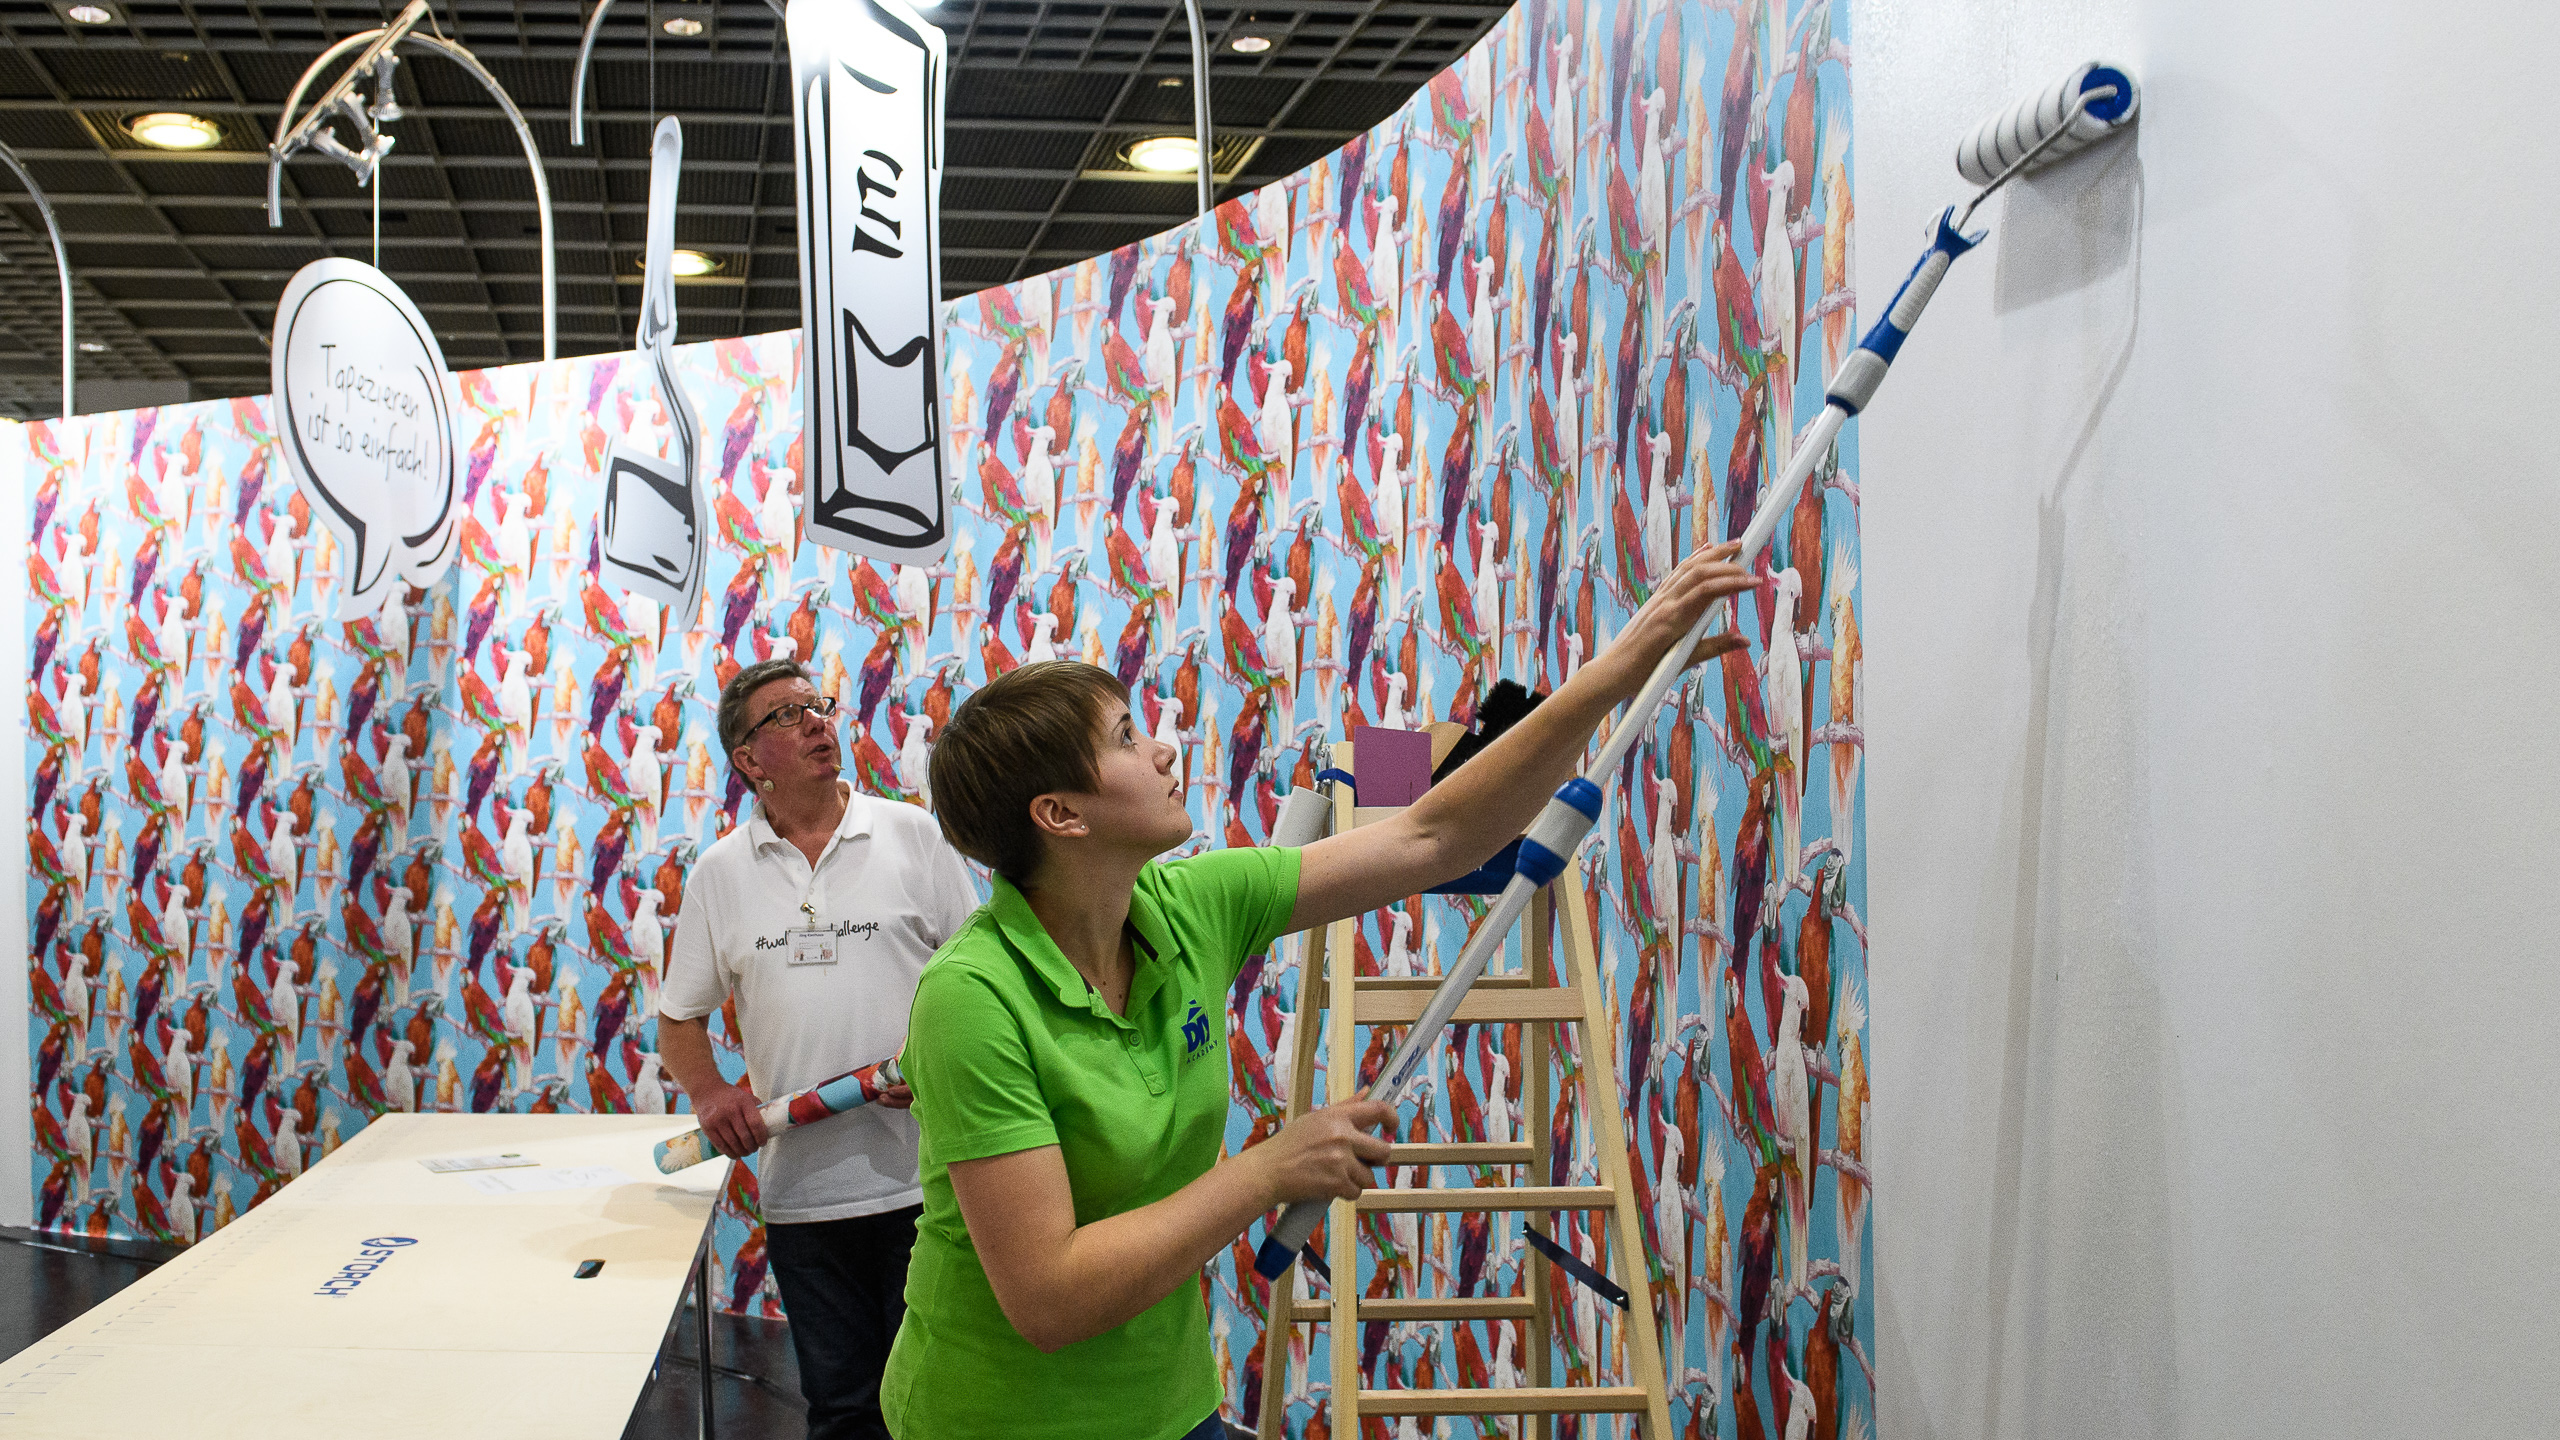 heimtextil-paperhanging-world-record, Miss DIY Kerstin Weiser